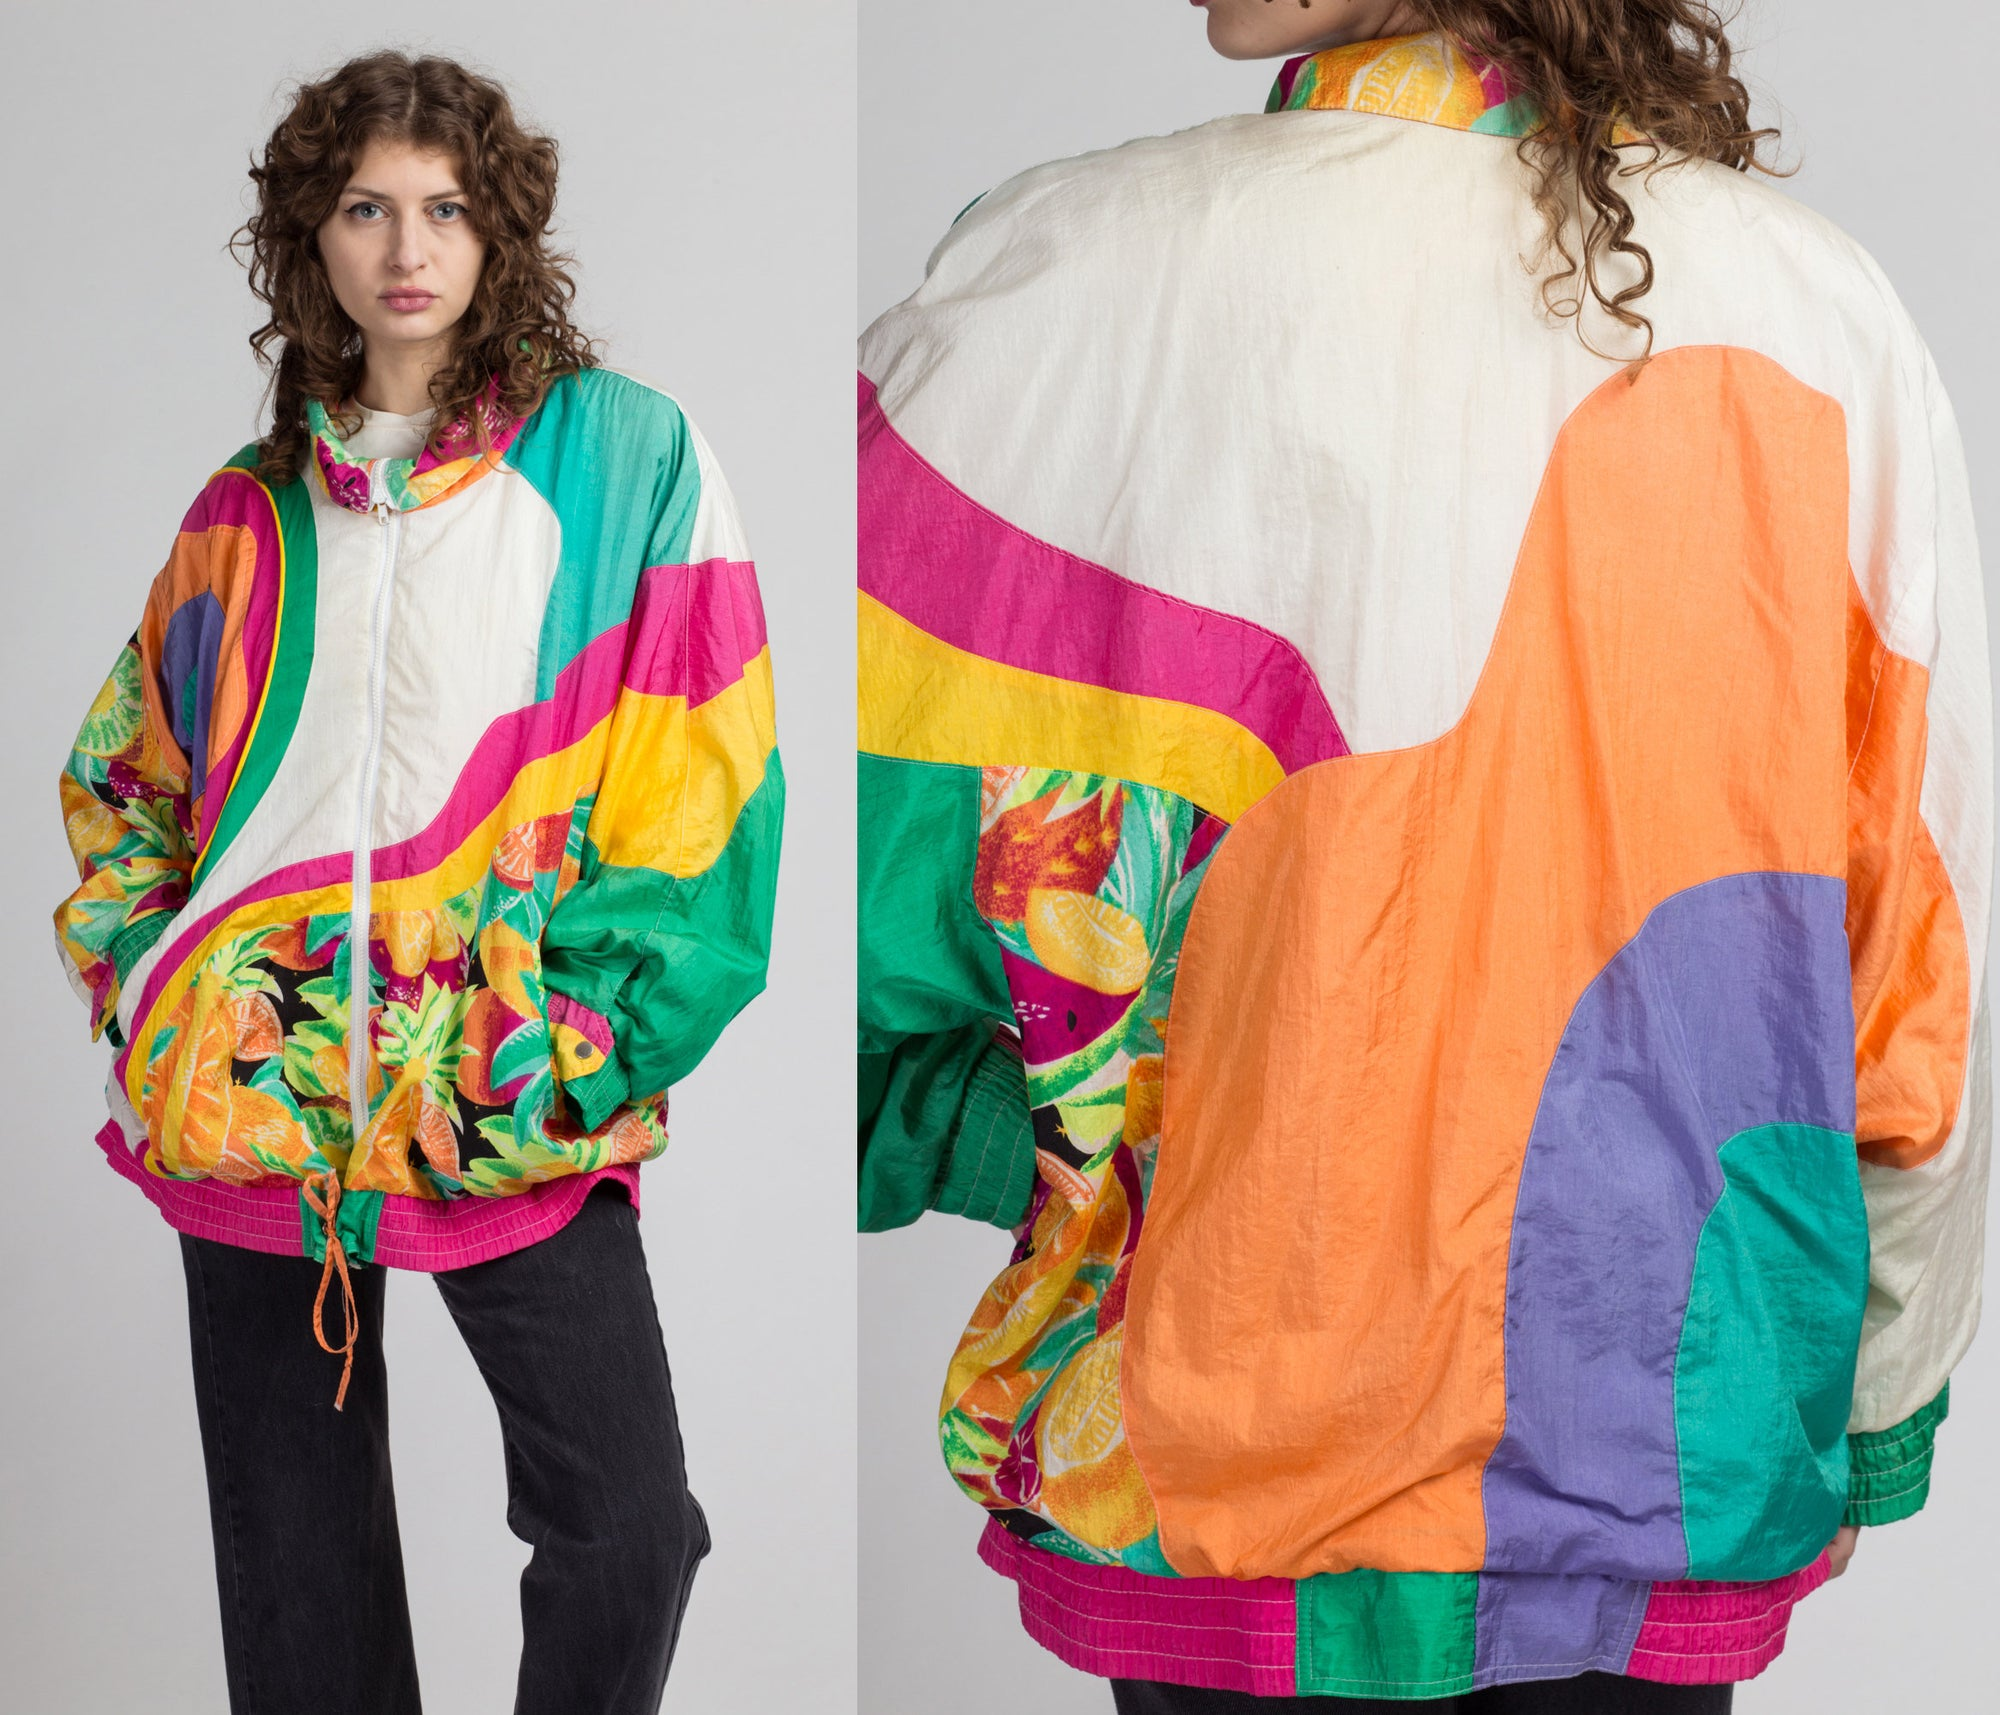 80s Fruit Print Color Block Windbreaker - 3X | Vintage Colorful Zip Up Retro Lightweight Jacket